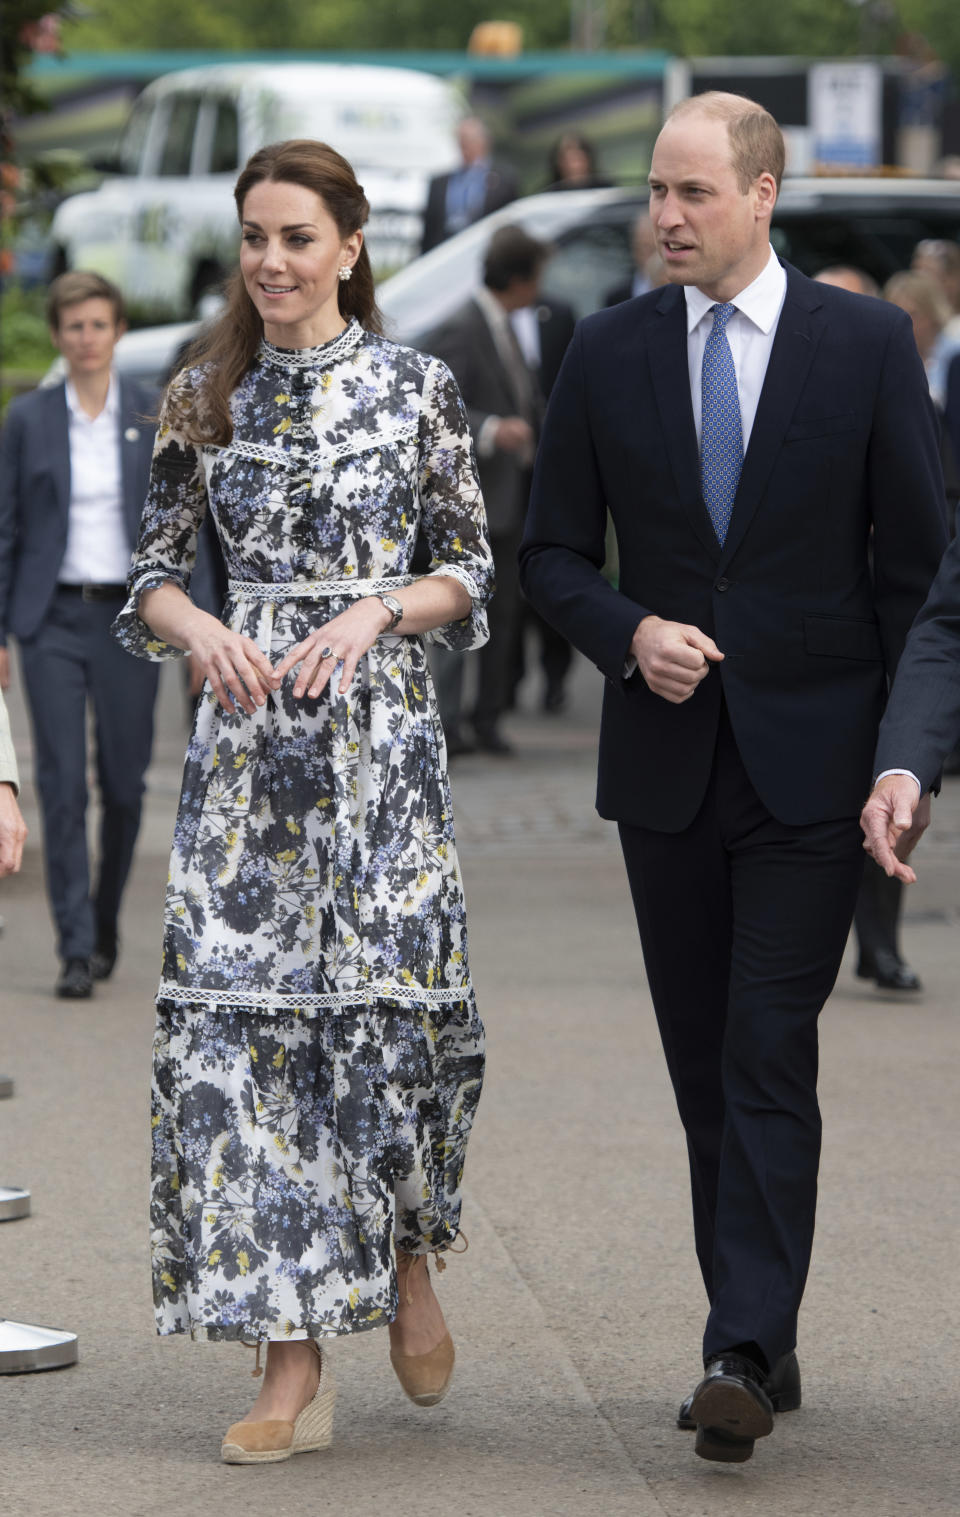 The Duchess of Cambridge and Prince William attended the RHS Chelsea Flower Show 2019 in London, England, and for the occasion Duchess Catherine wore her Castañer wedge. (Getty Images)